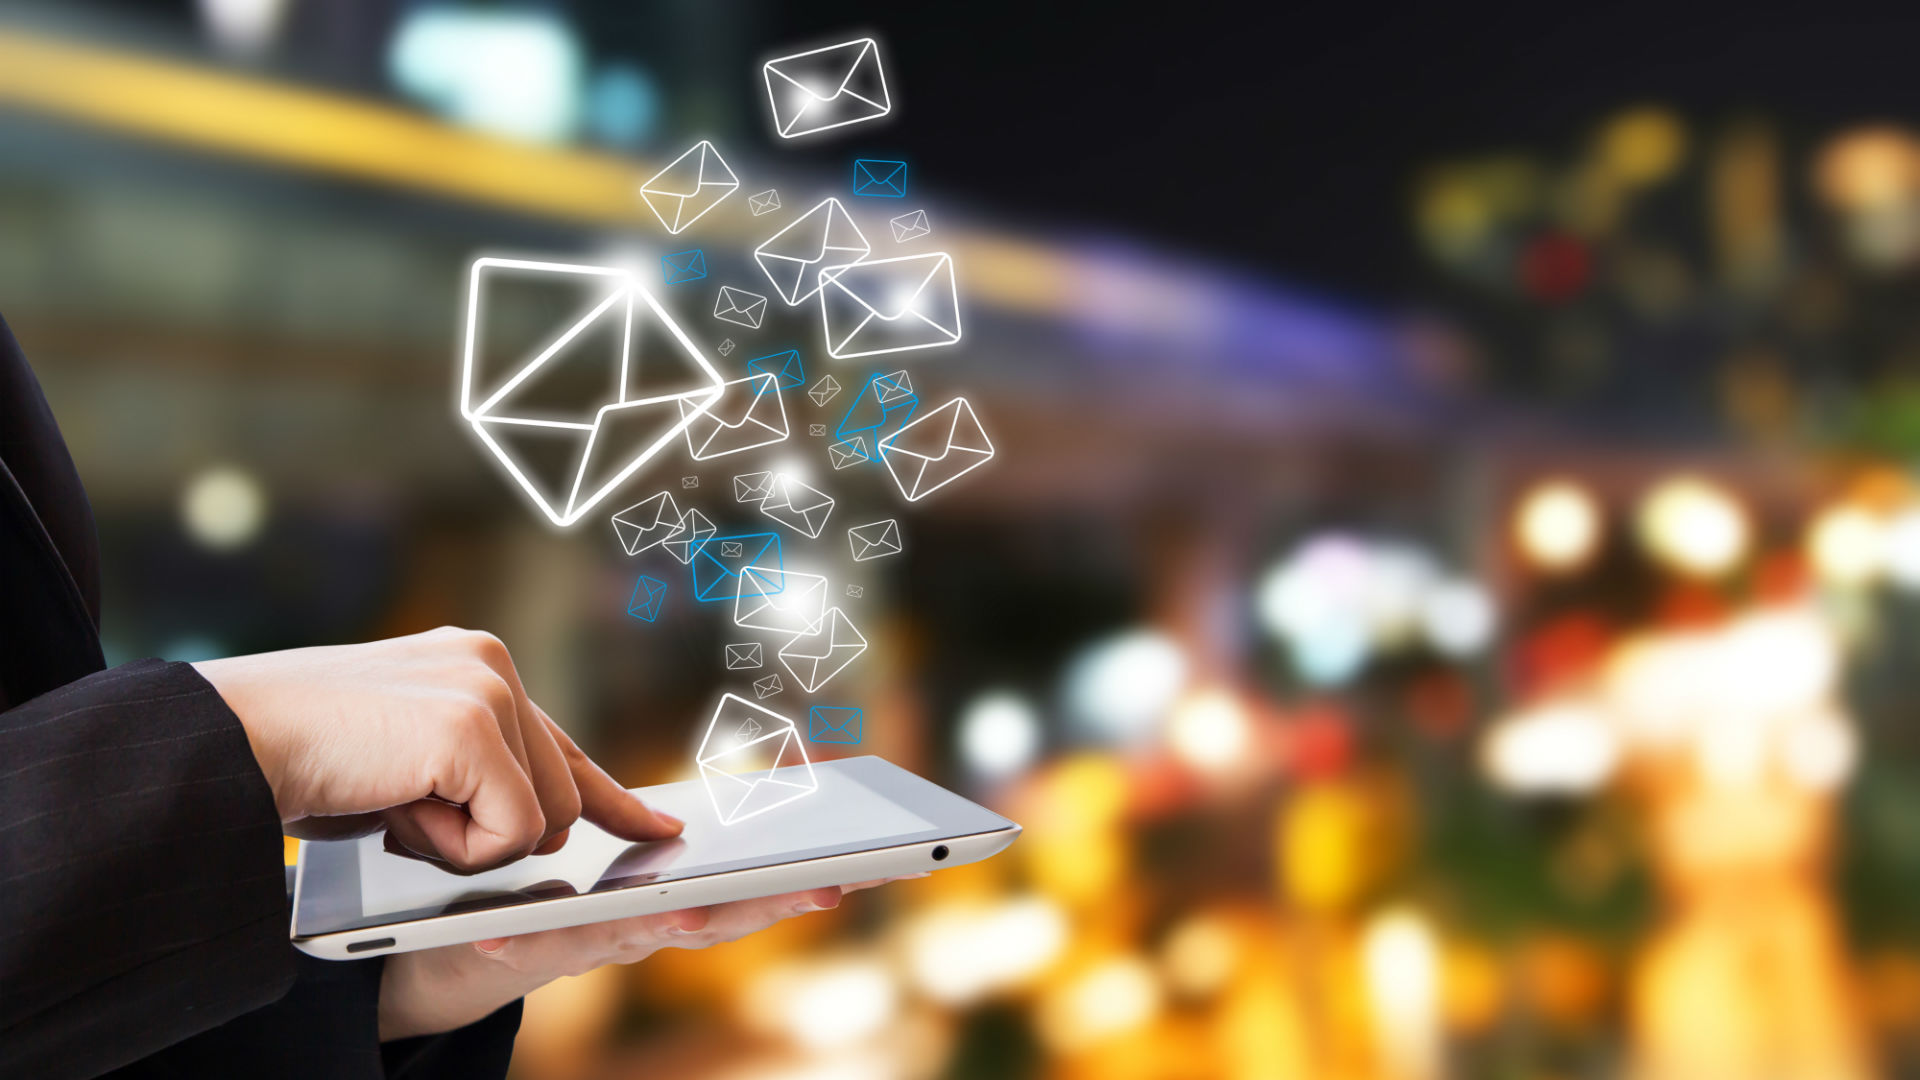 Enterprise and business emails allow for growth